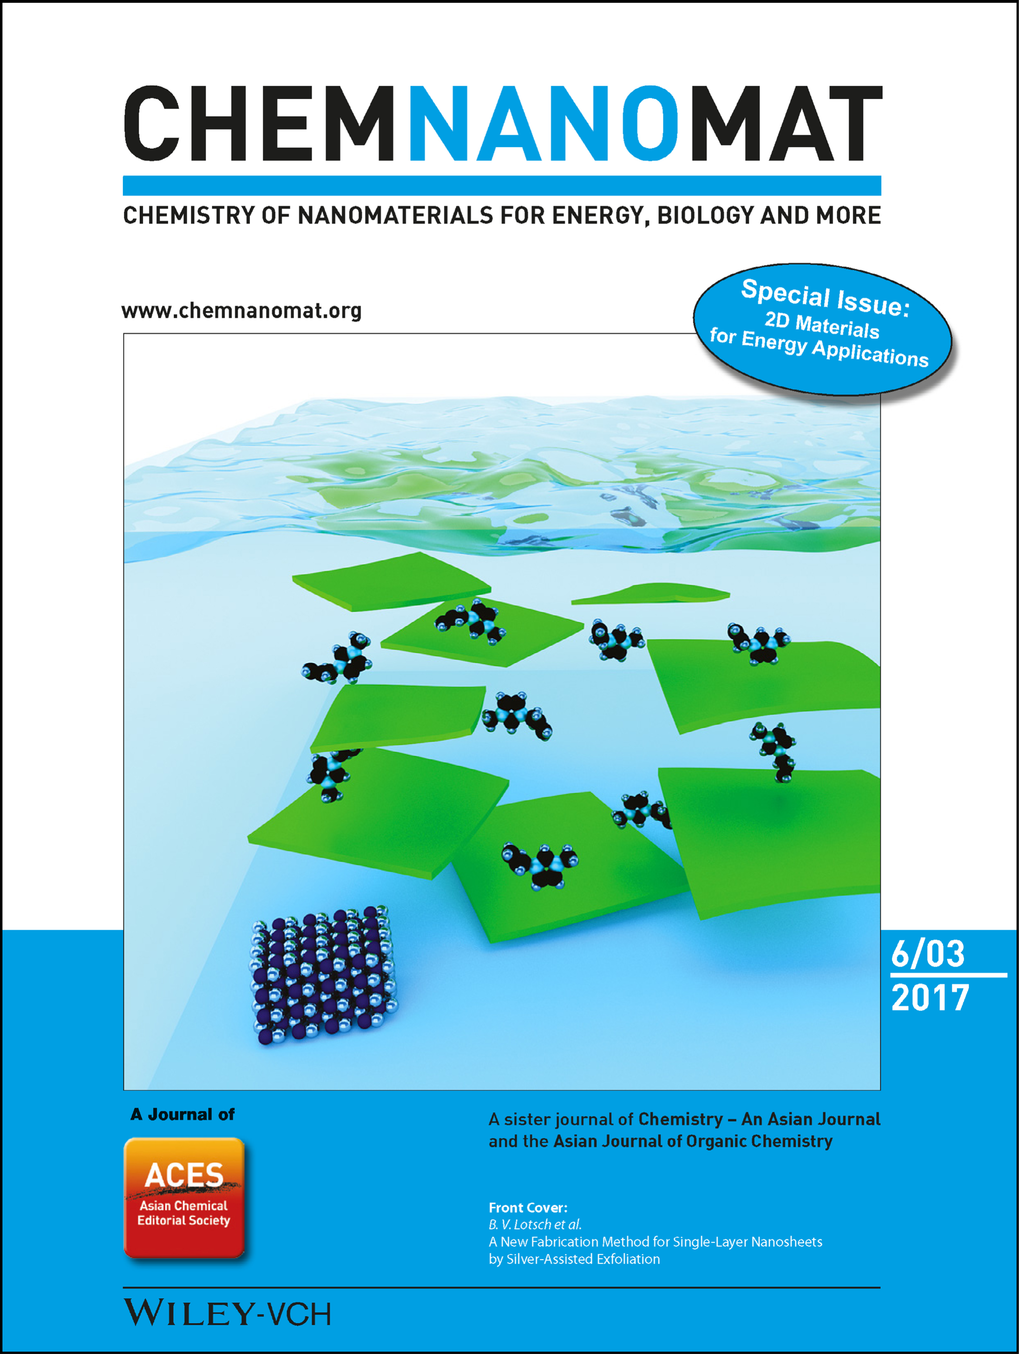 "<p><span class=""article-header__meta-info-data"">Front Cover Image from 2017 [122]</span></p>"